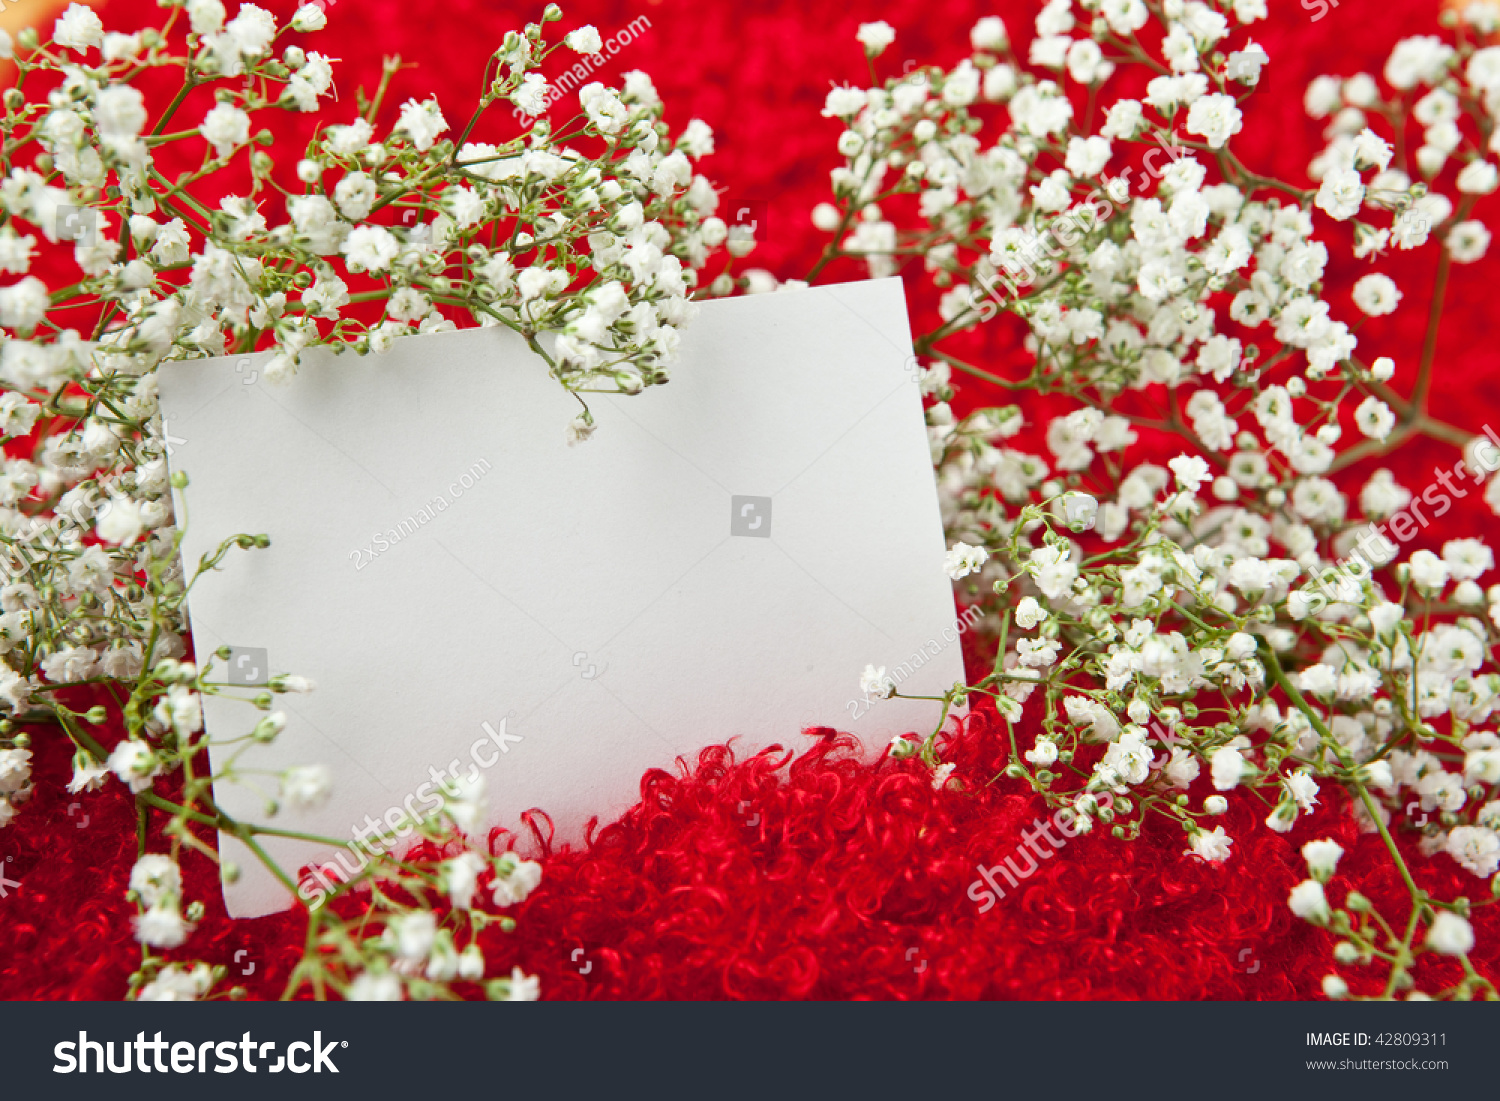 Blank Invitation Card White Flowers On Stock Photo (Royalty Free ...